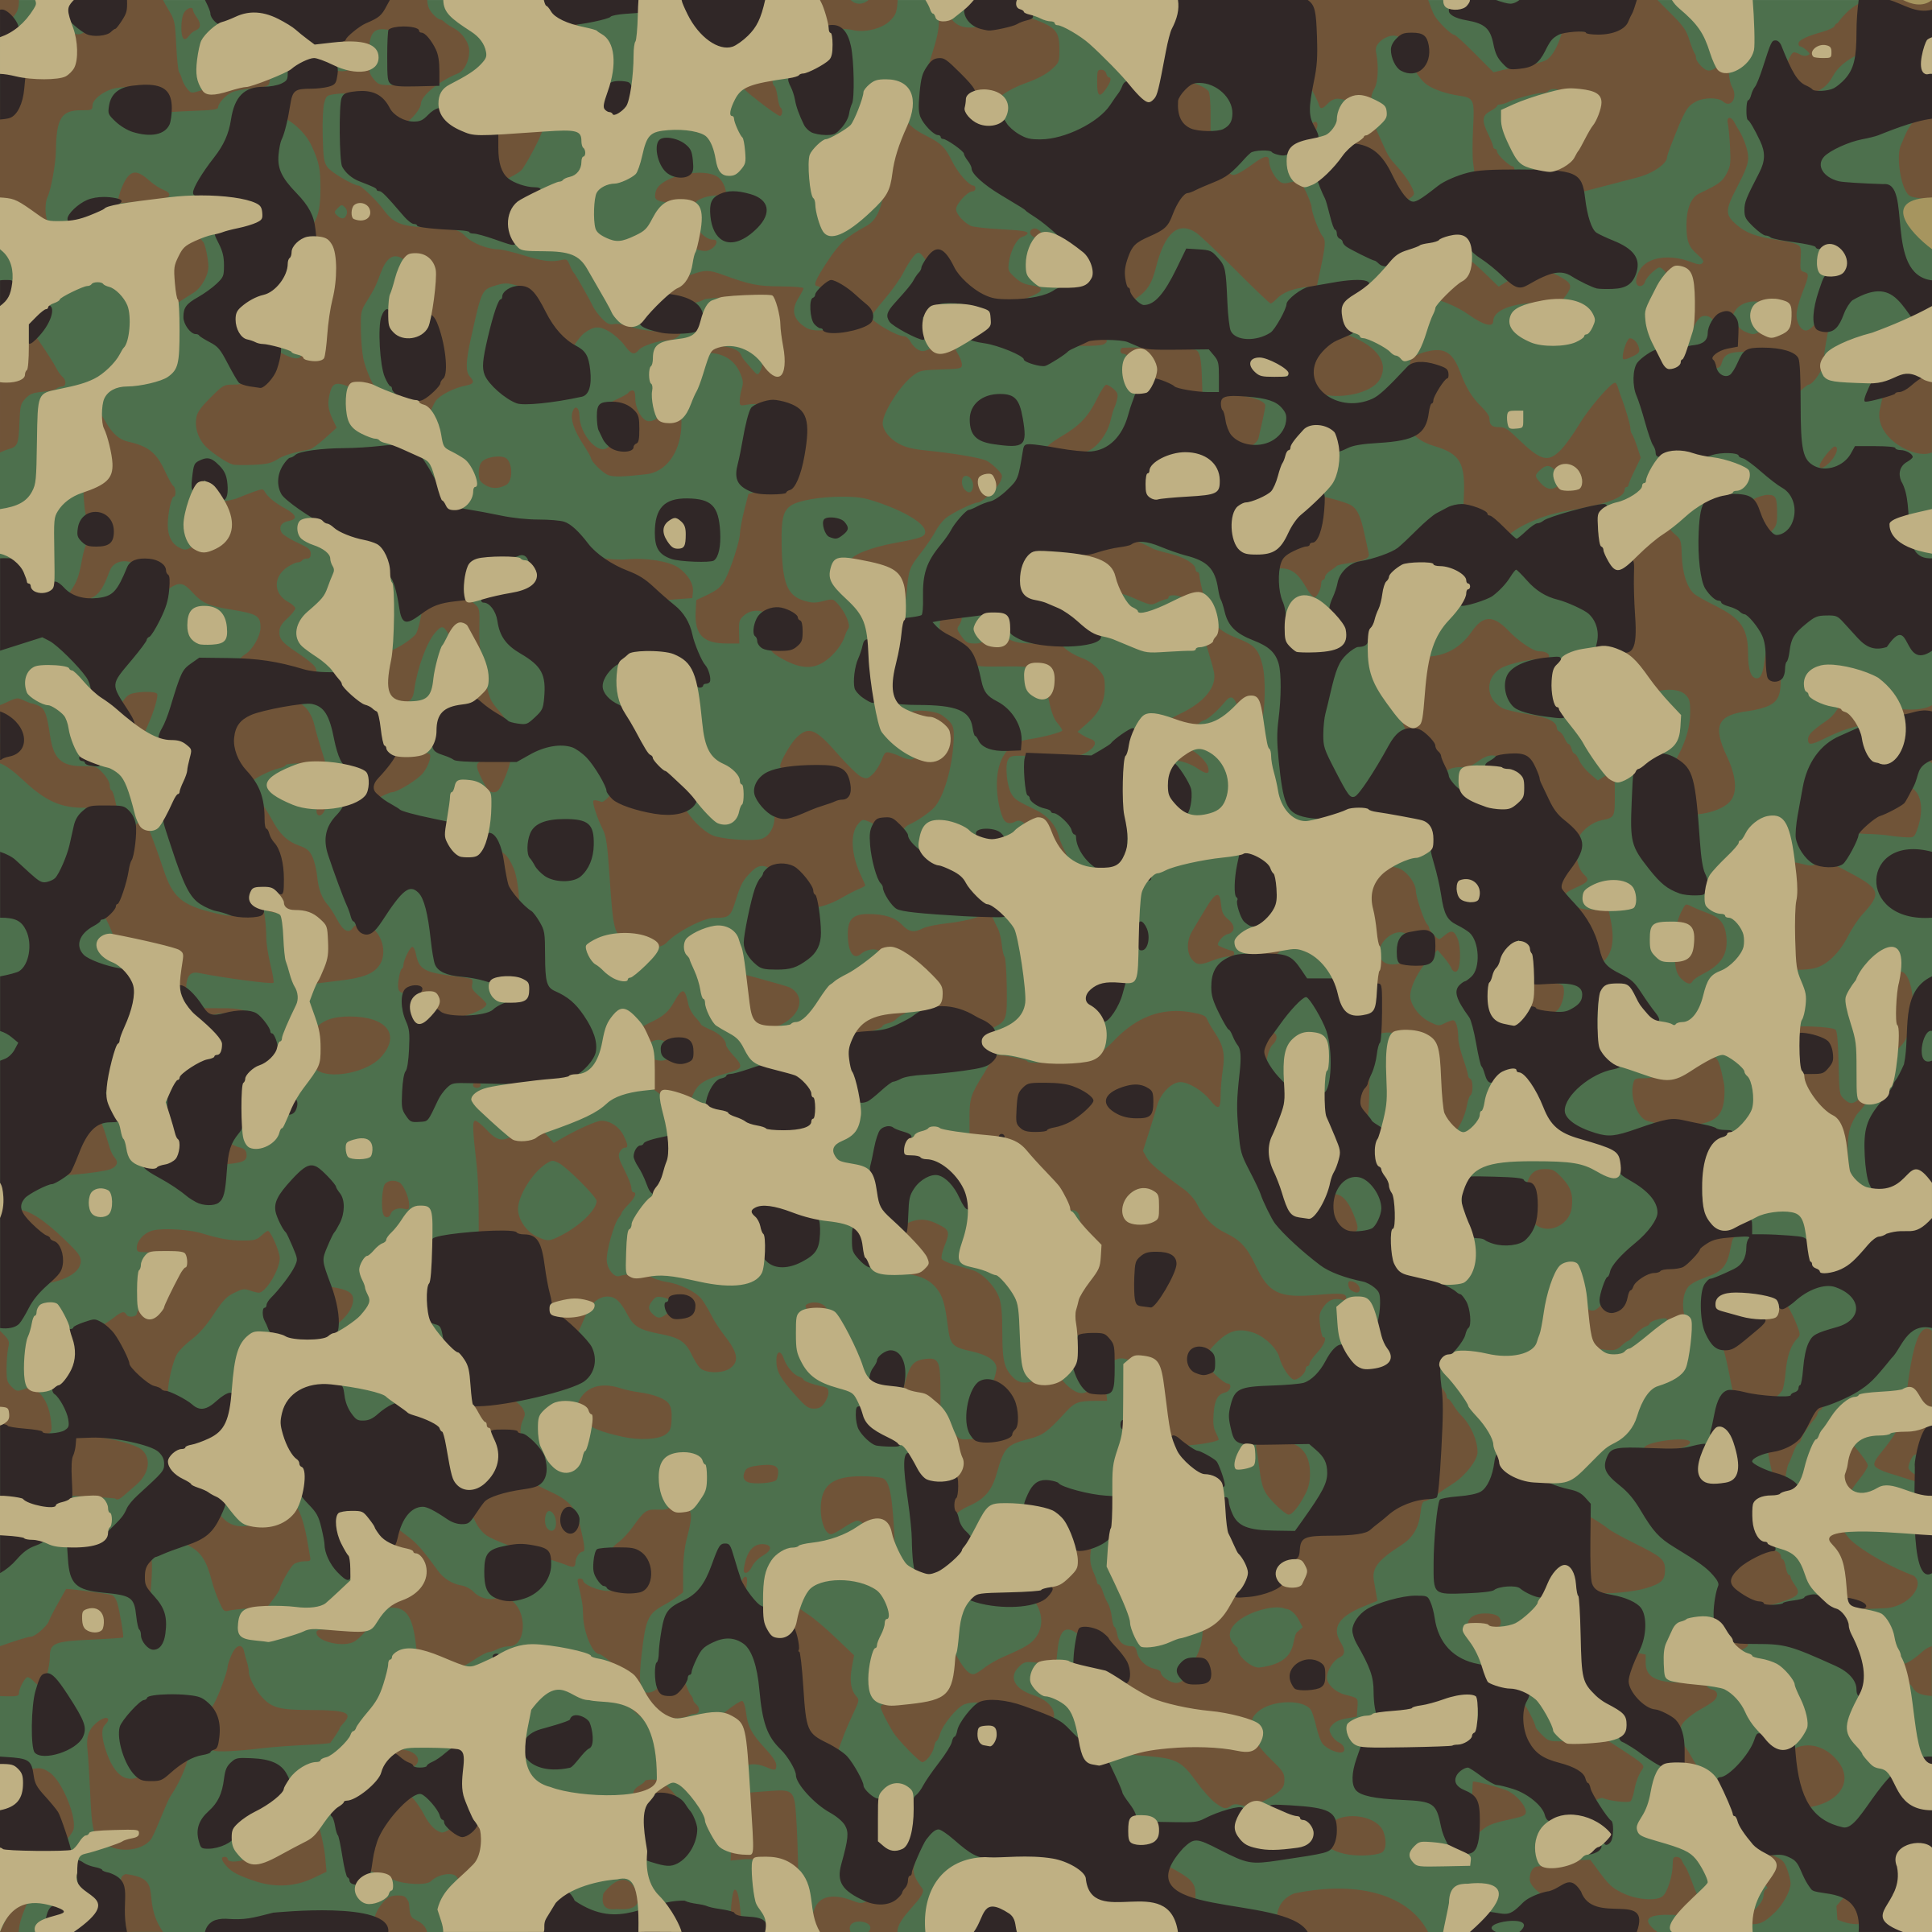 Army Camouflage Background Clipart.